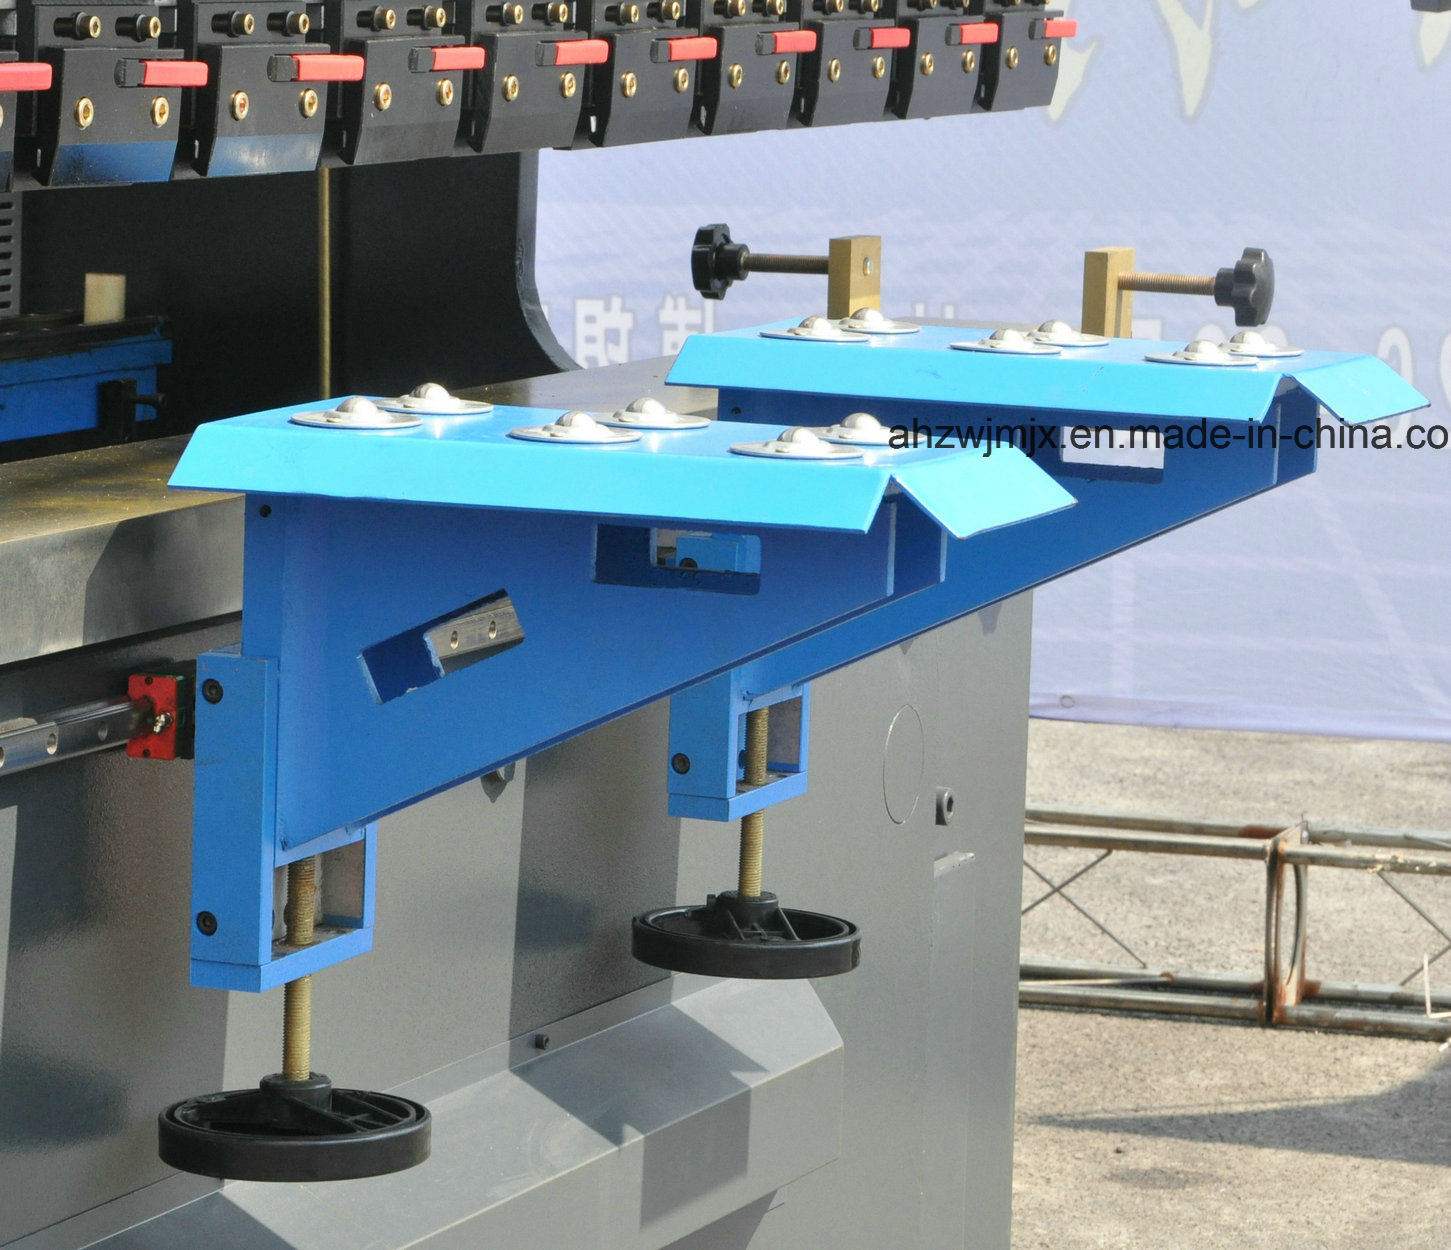 Wc67y Simple CNC Bending Machine